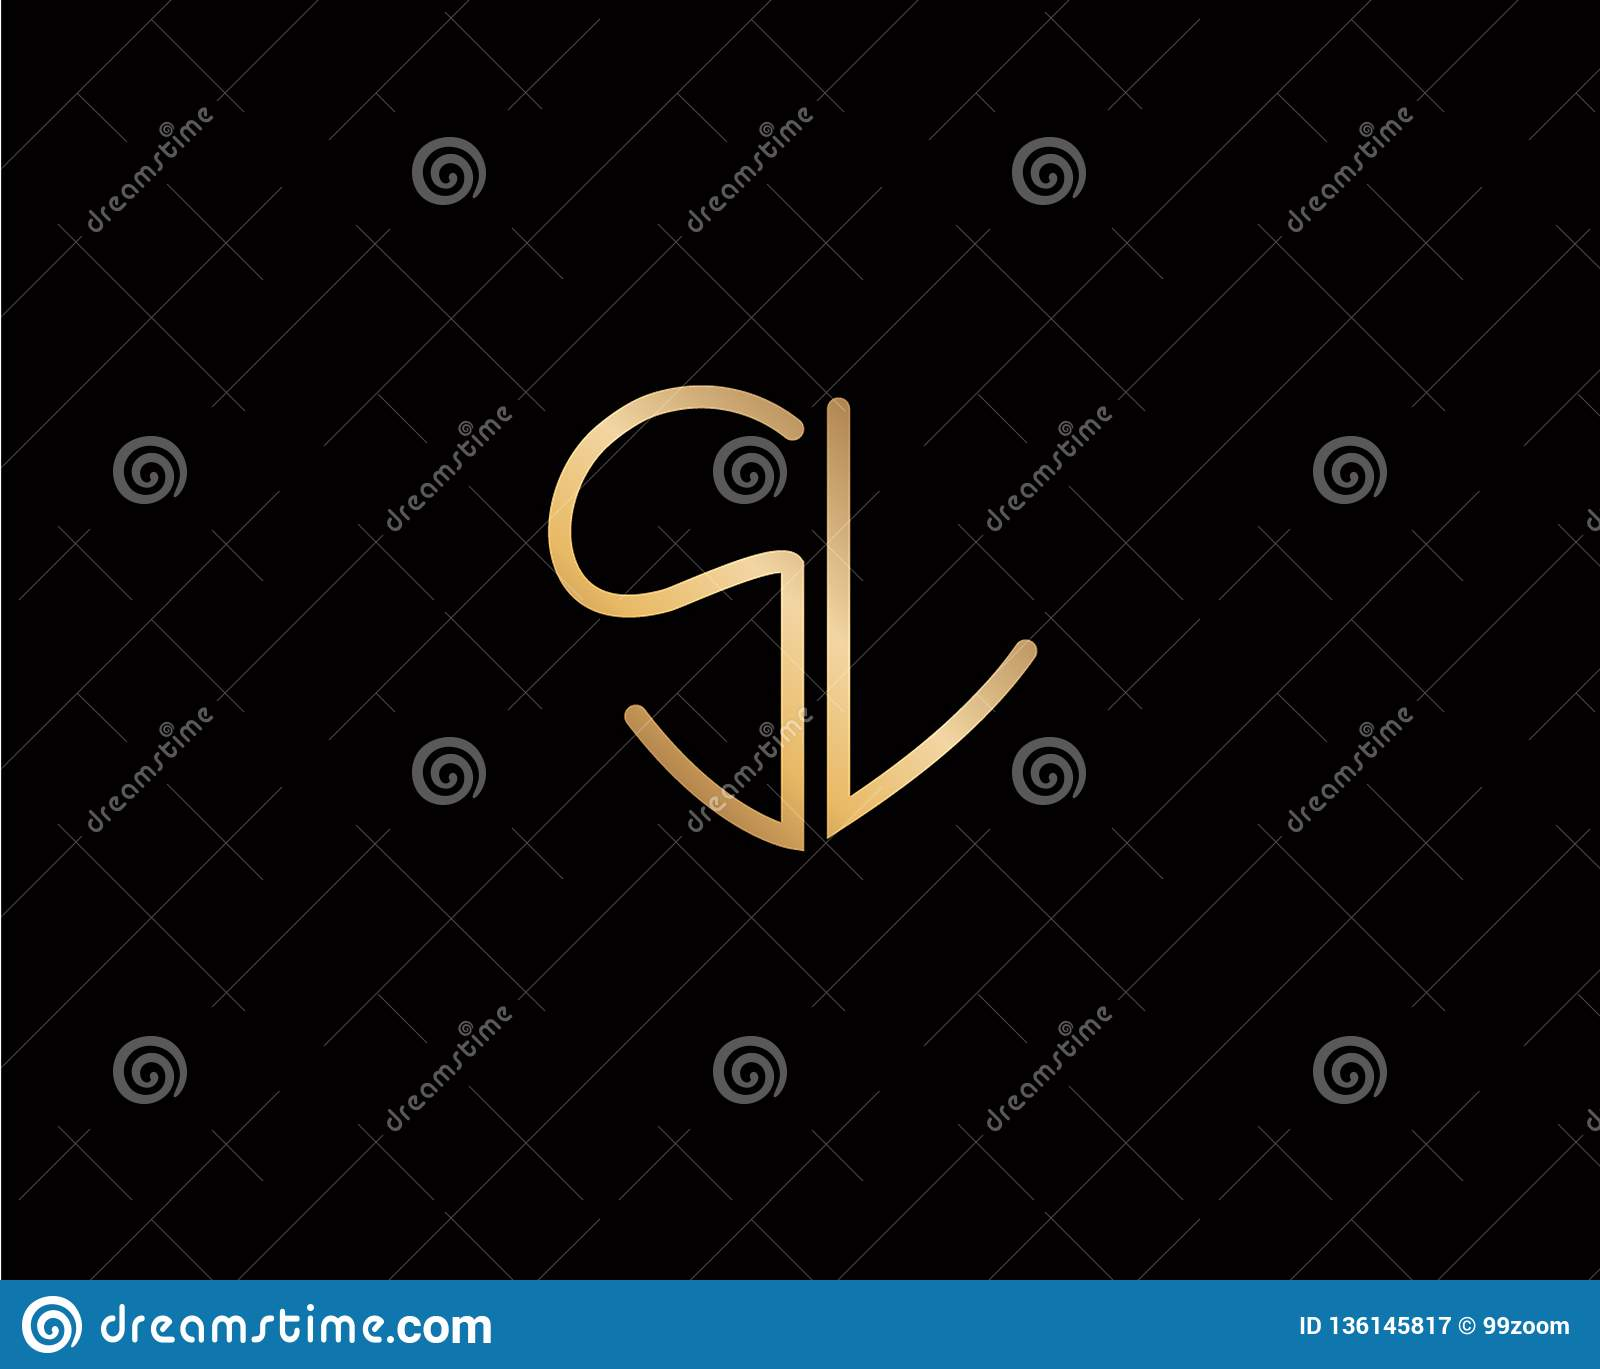 Sl Initial Heart Shape Gold Color Later Logo Design Stock Vector Illustration Of Valentine Marriage 136145817